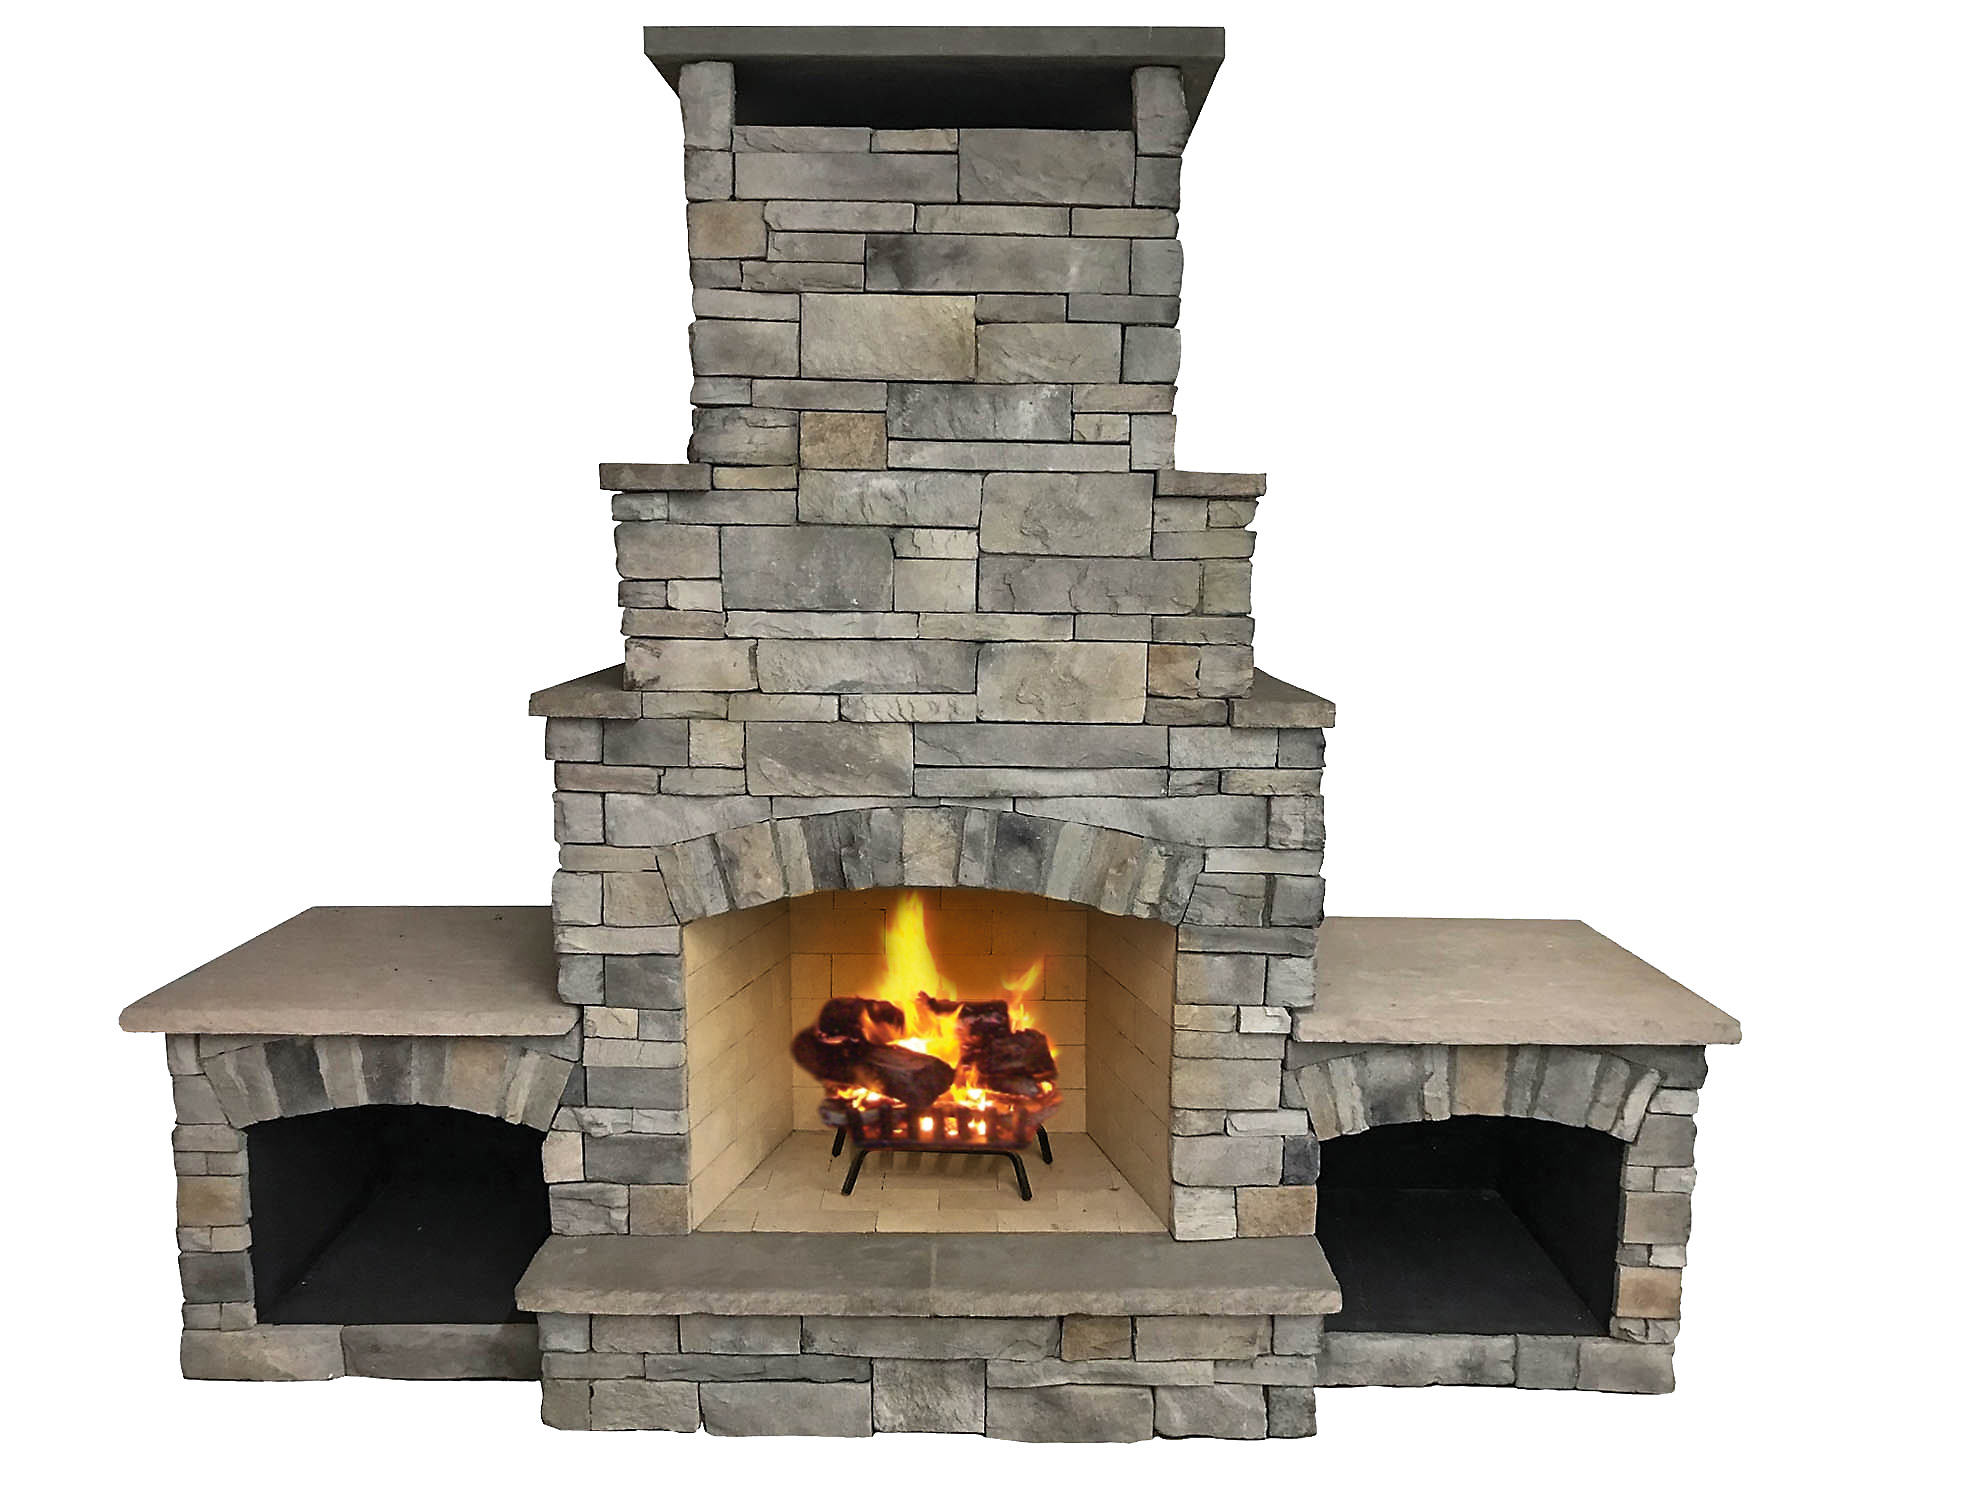 "The Sentinel - A mid-size wood burning outdoor fireplace with a 36"" fire box and an attractive stepped chimney detail. Solidly-built using a FireRock™ masonry core, high temperature fire brick lining and cultured stone veneer. Gas log starters or gas log sets can be added as an upgrade"